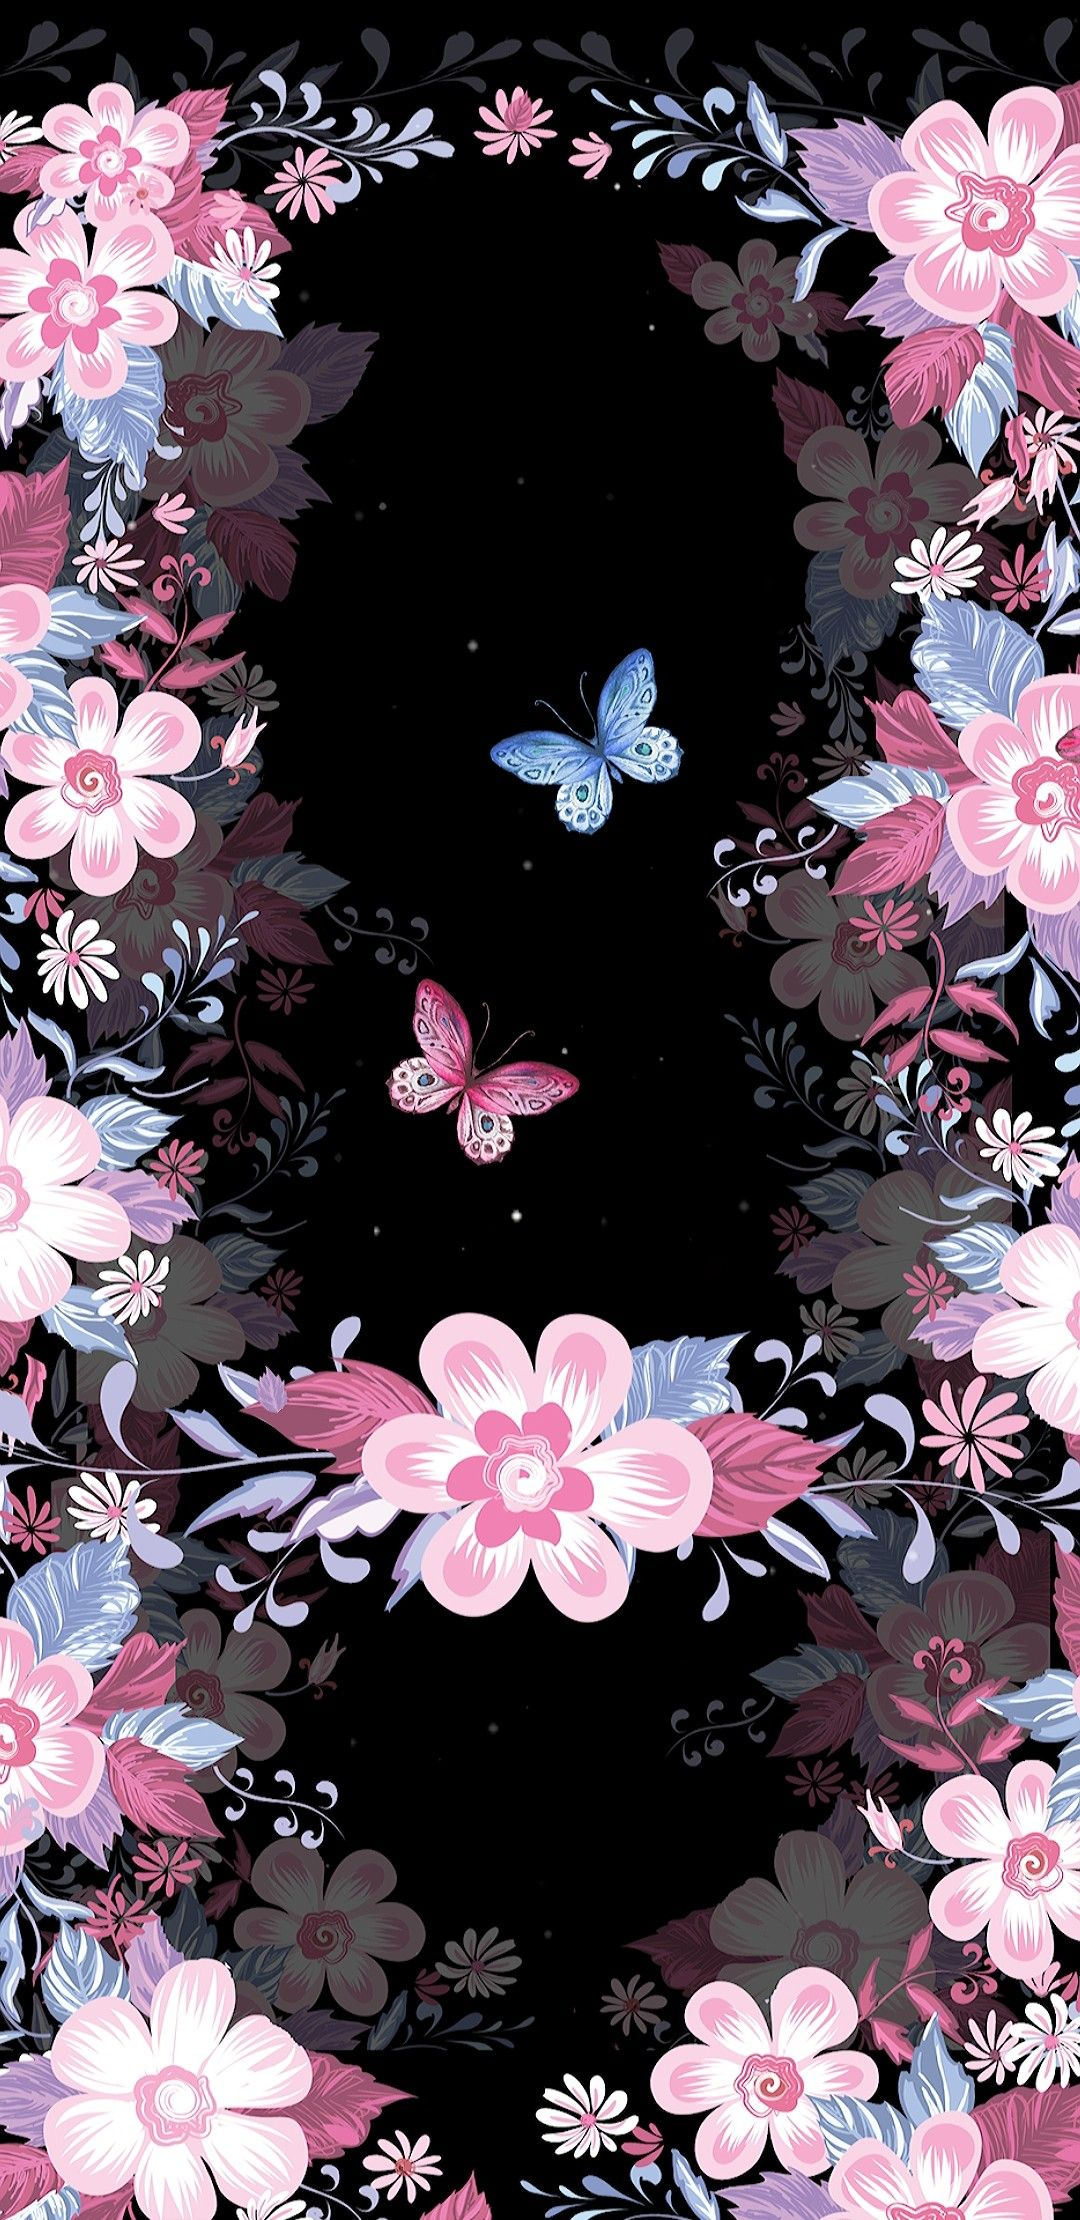 Pin by ♡☆Fenedhis Lasa☆♡ on Hearts & Flowers Ipod